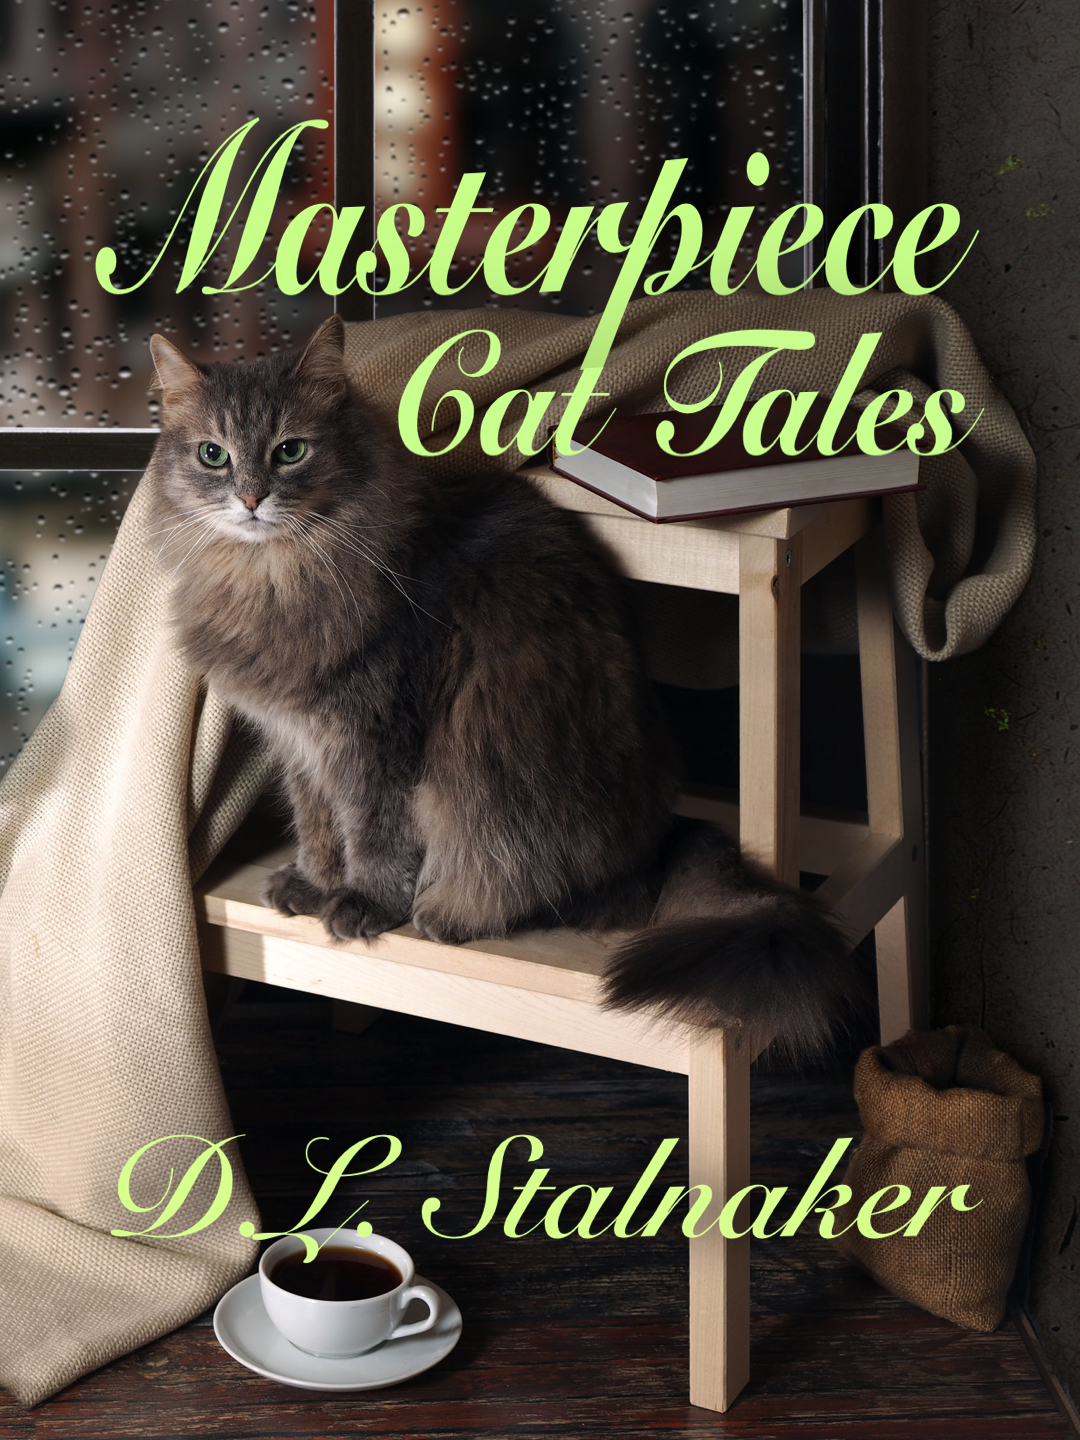 Masterpiece Cat Tales revised